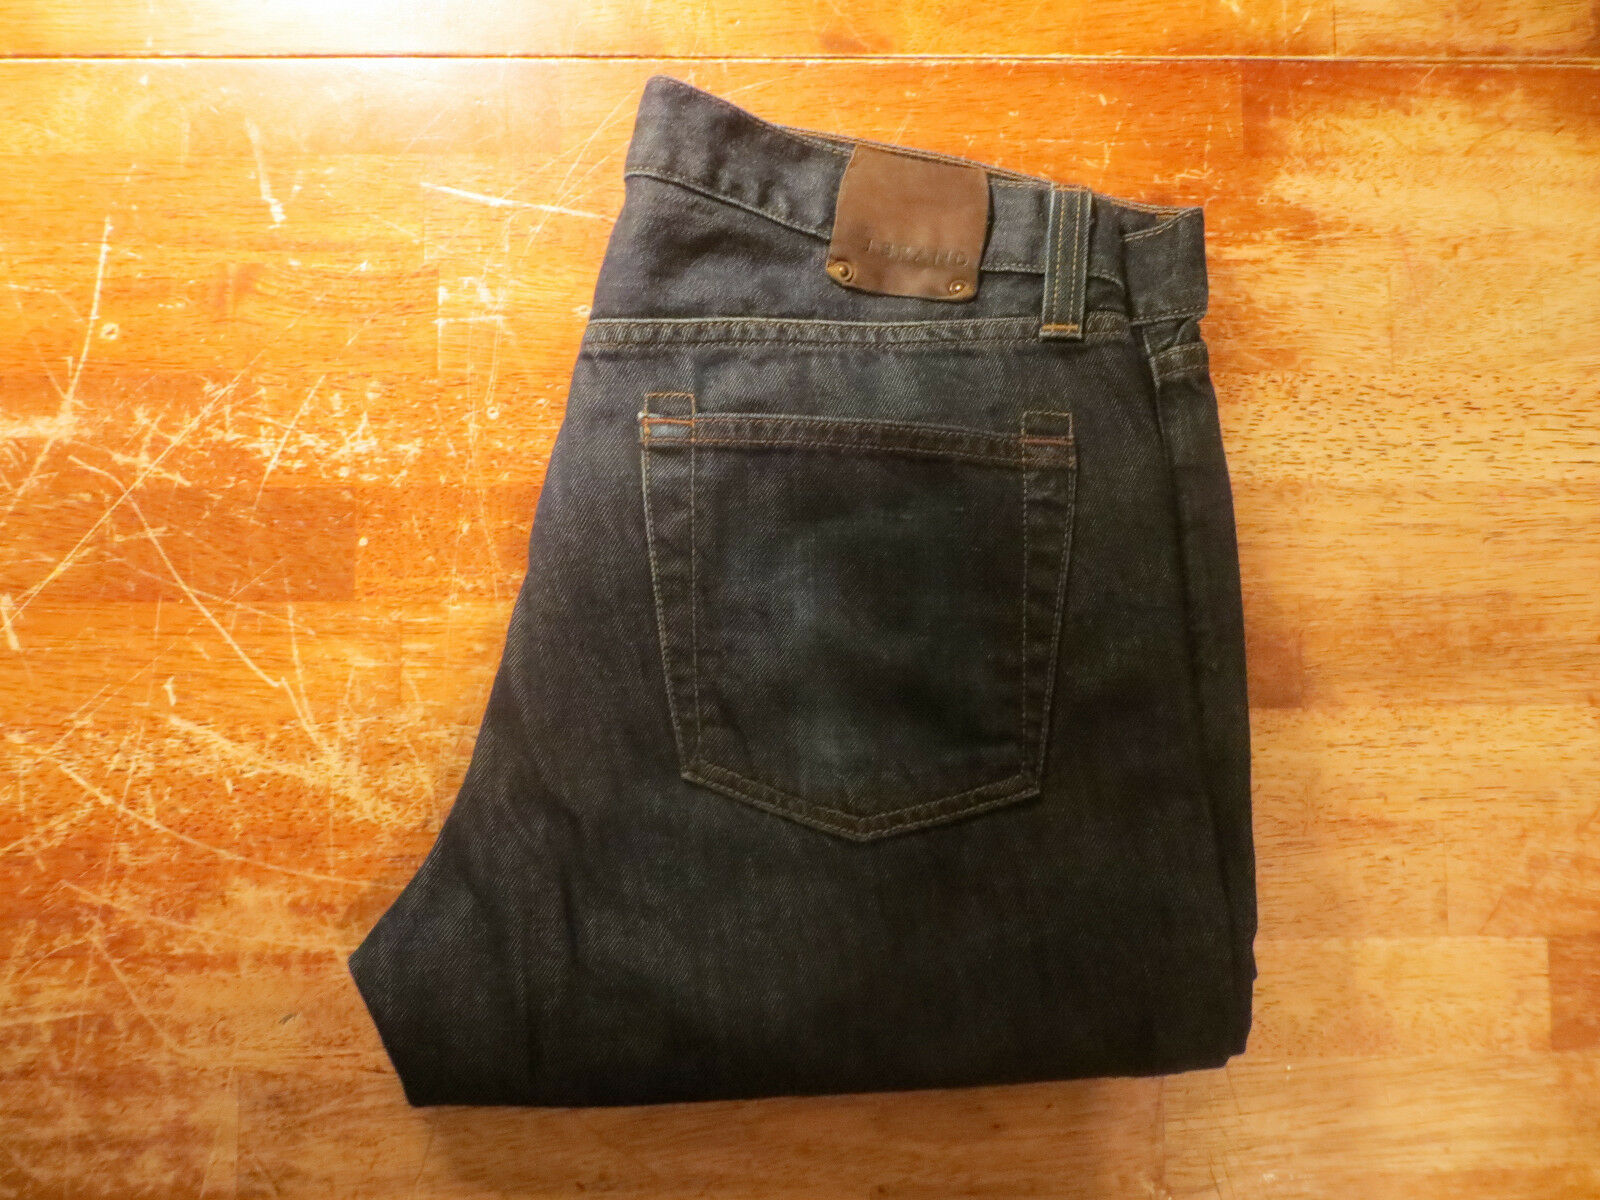 J BRAND FAIRLANE LOOSE STRAIGHT LEG JEANS IN BOONE WASH SIZE 34X31 VERY NICE